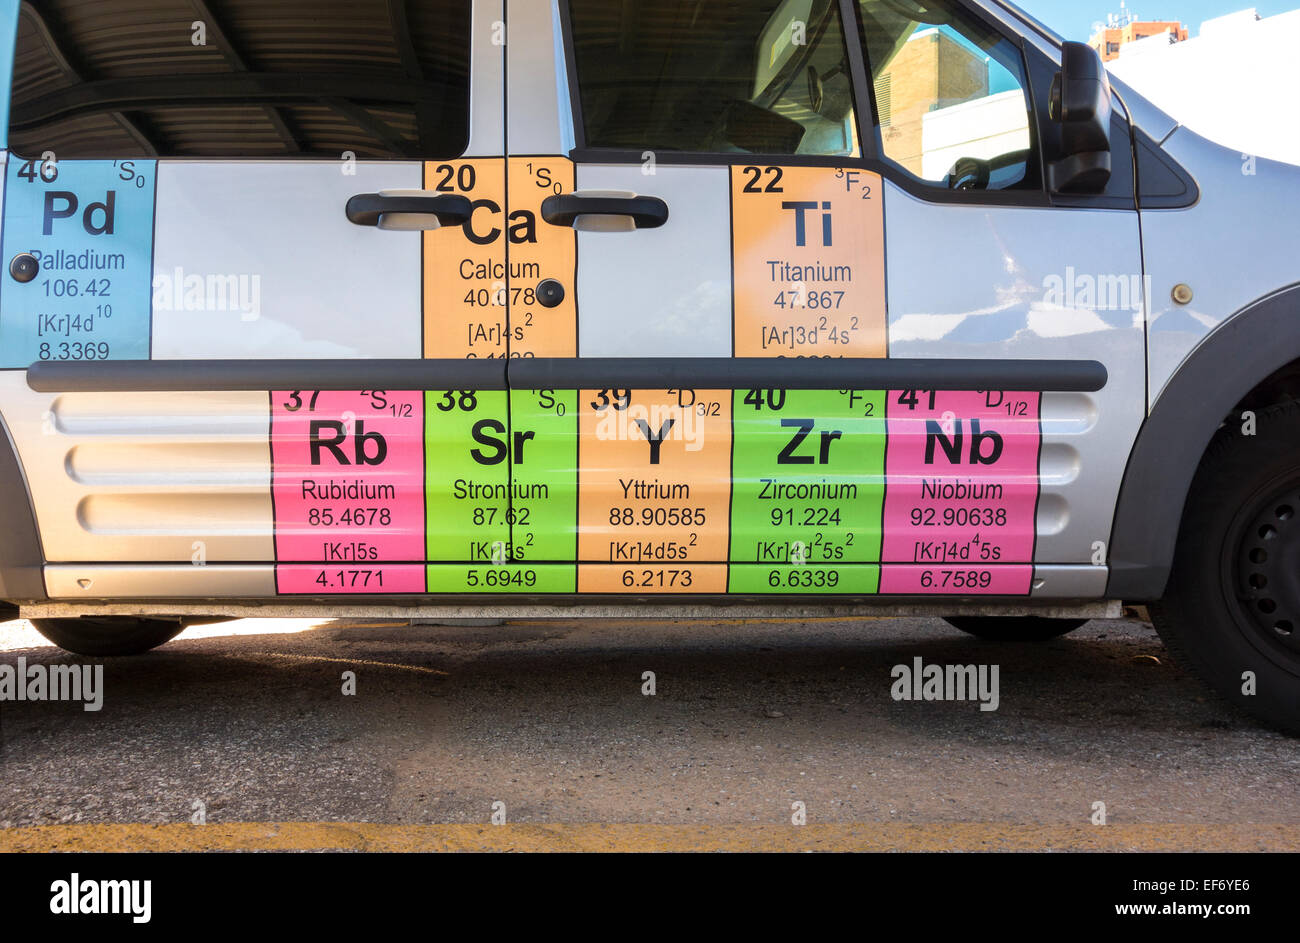 Mendeleevs periodic table of the elements on the side of a car of mendeleevs periodic table of the elements on the side of a car of the maryland science center in baltimore md gamestrikefo Choice Image